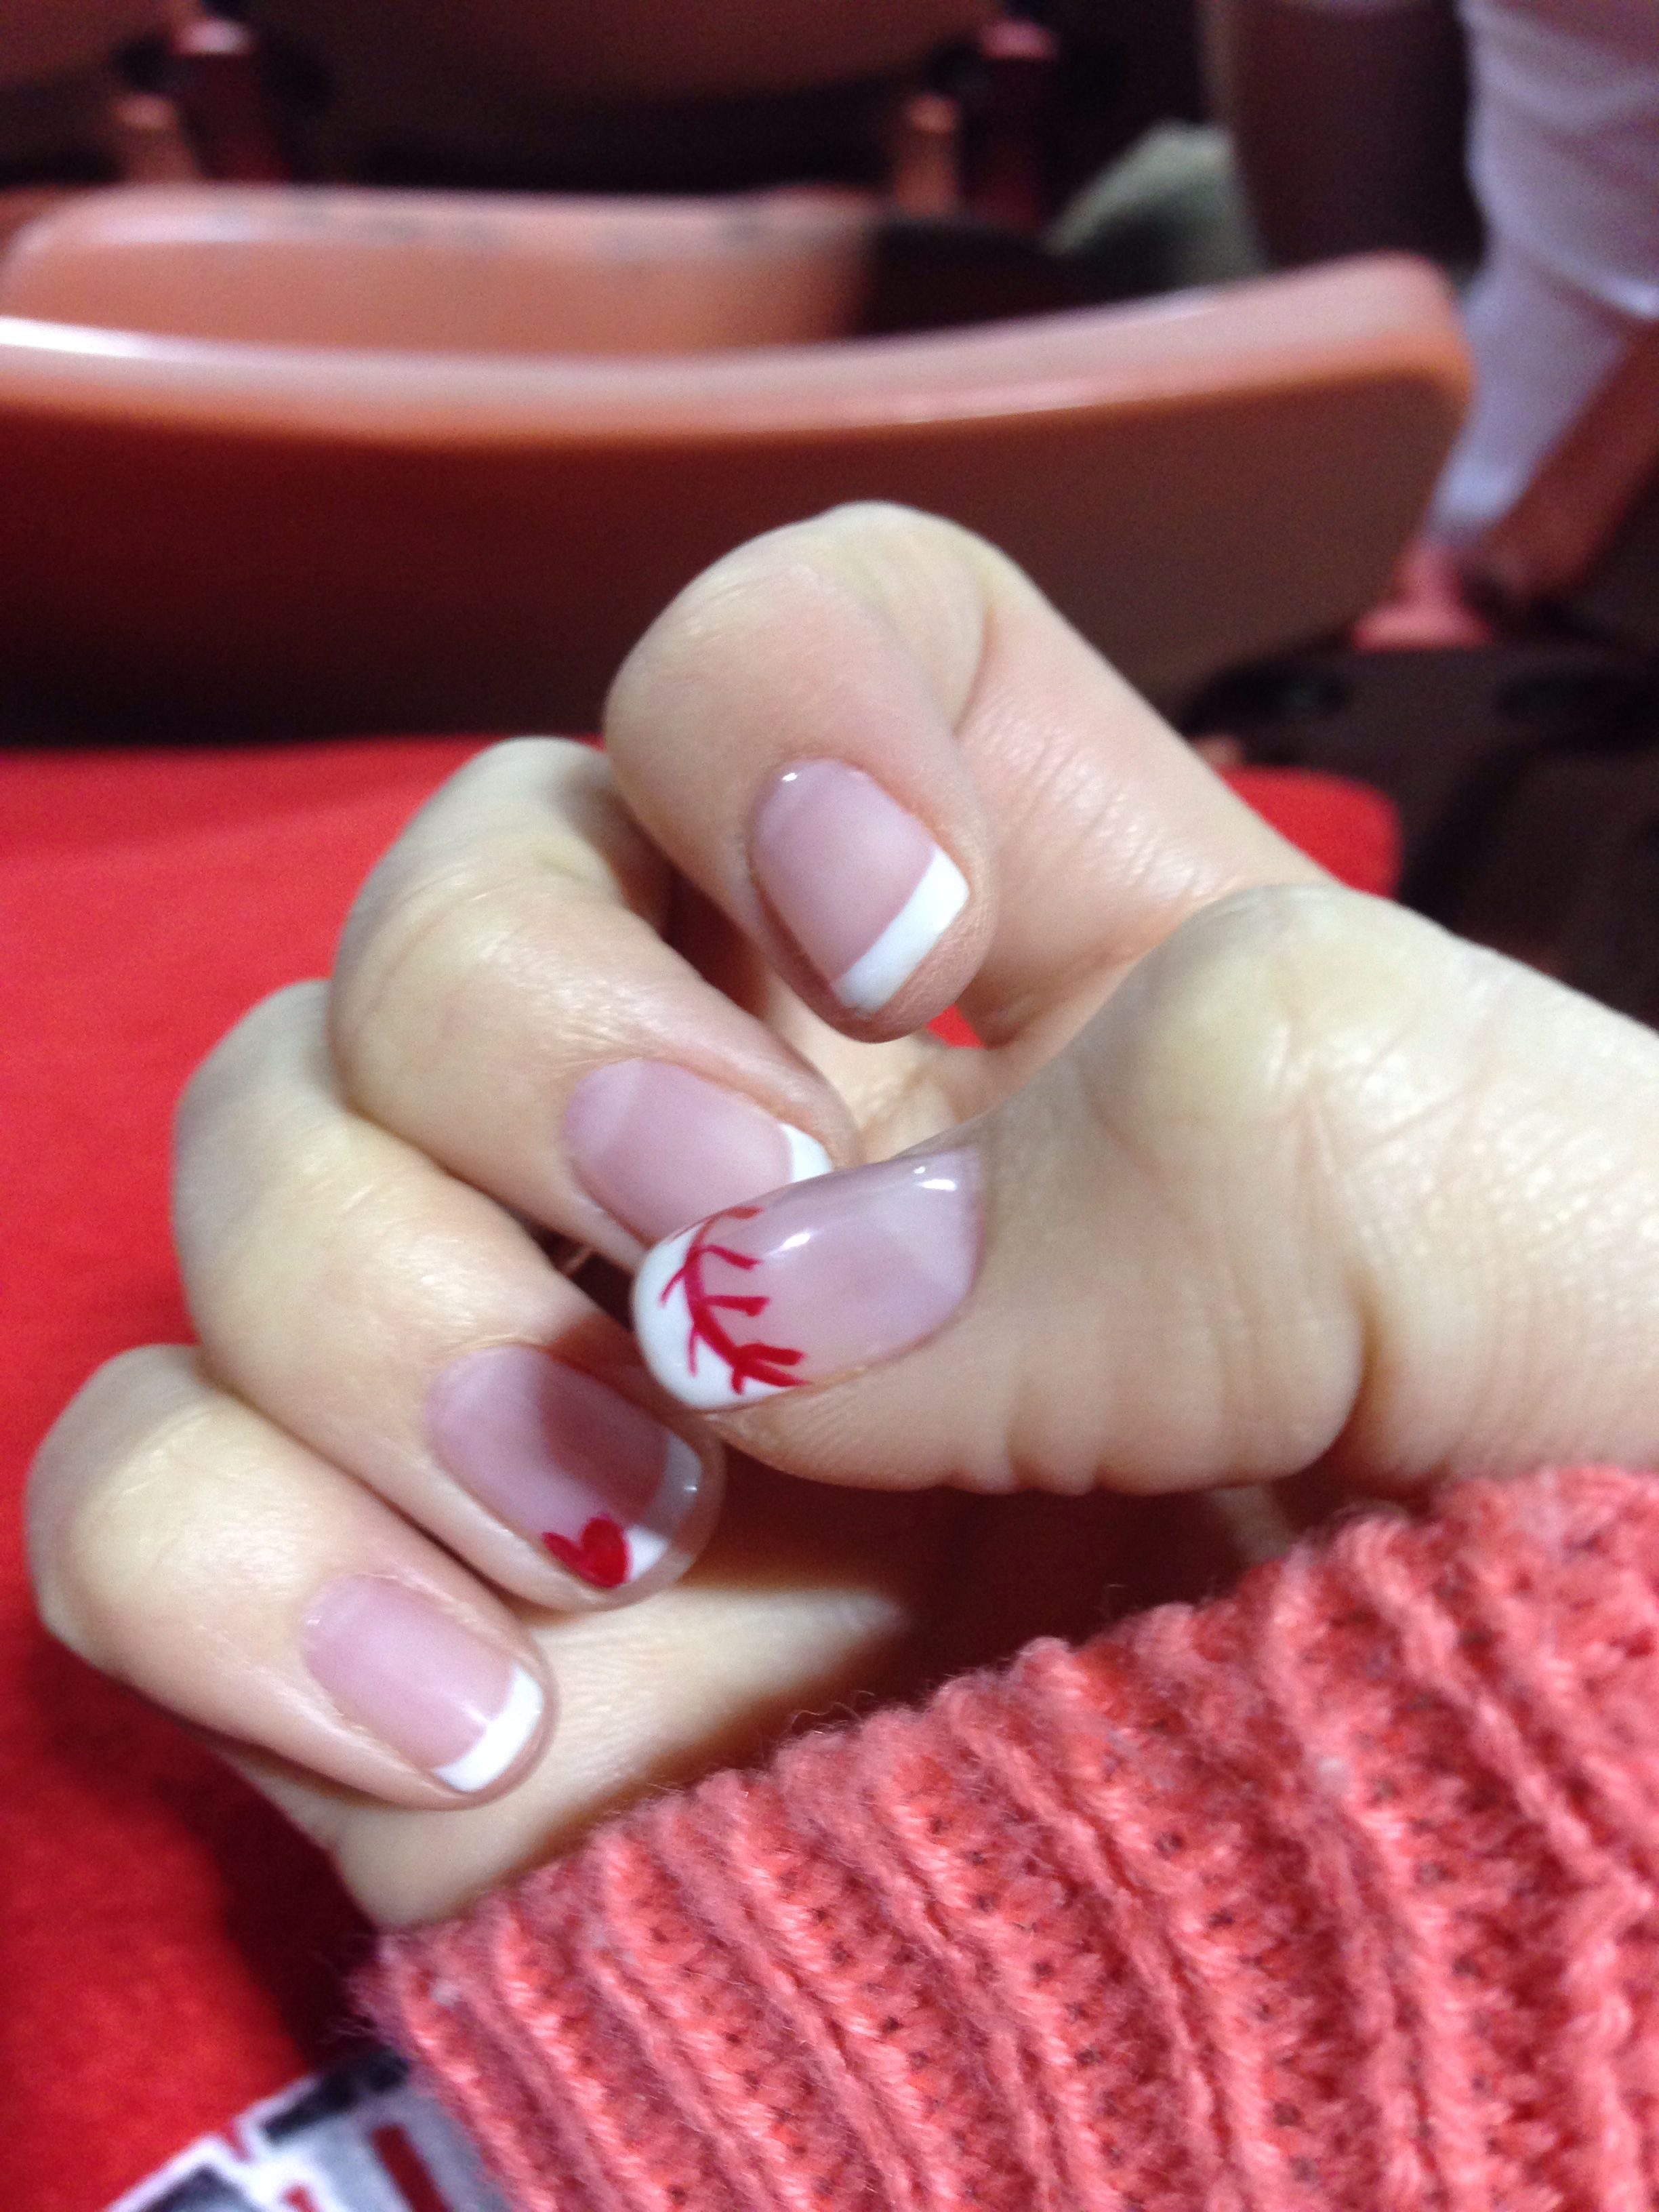 Baseball nail design with heart beauty nails French ...